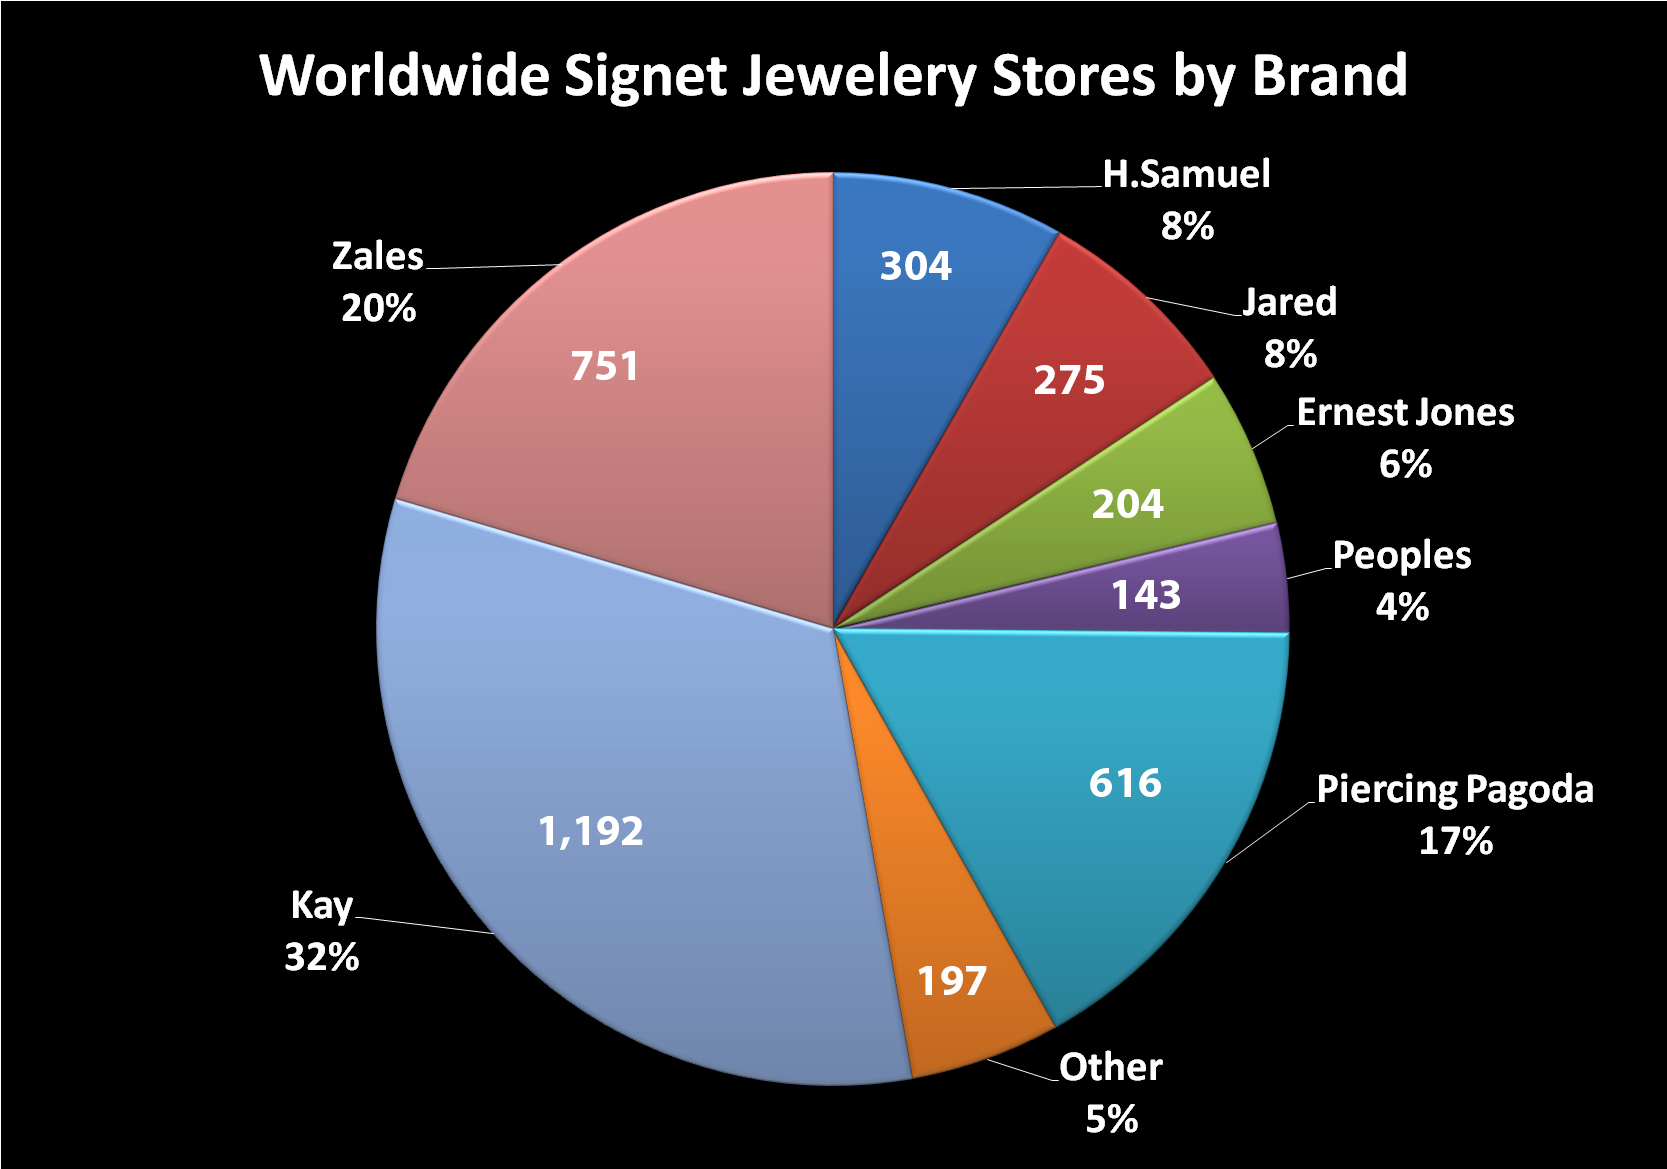 Worldwide stores by brand